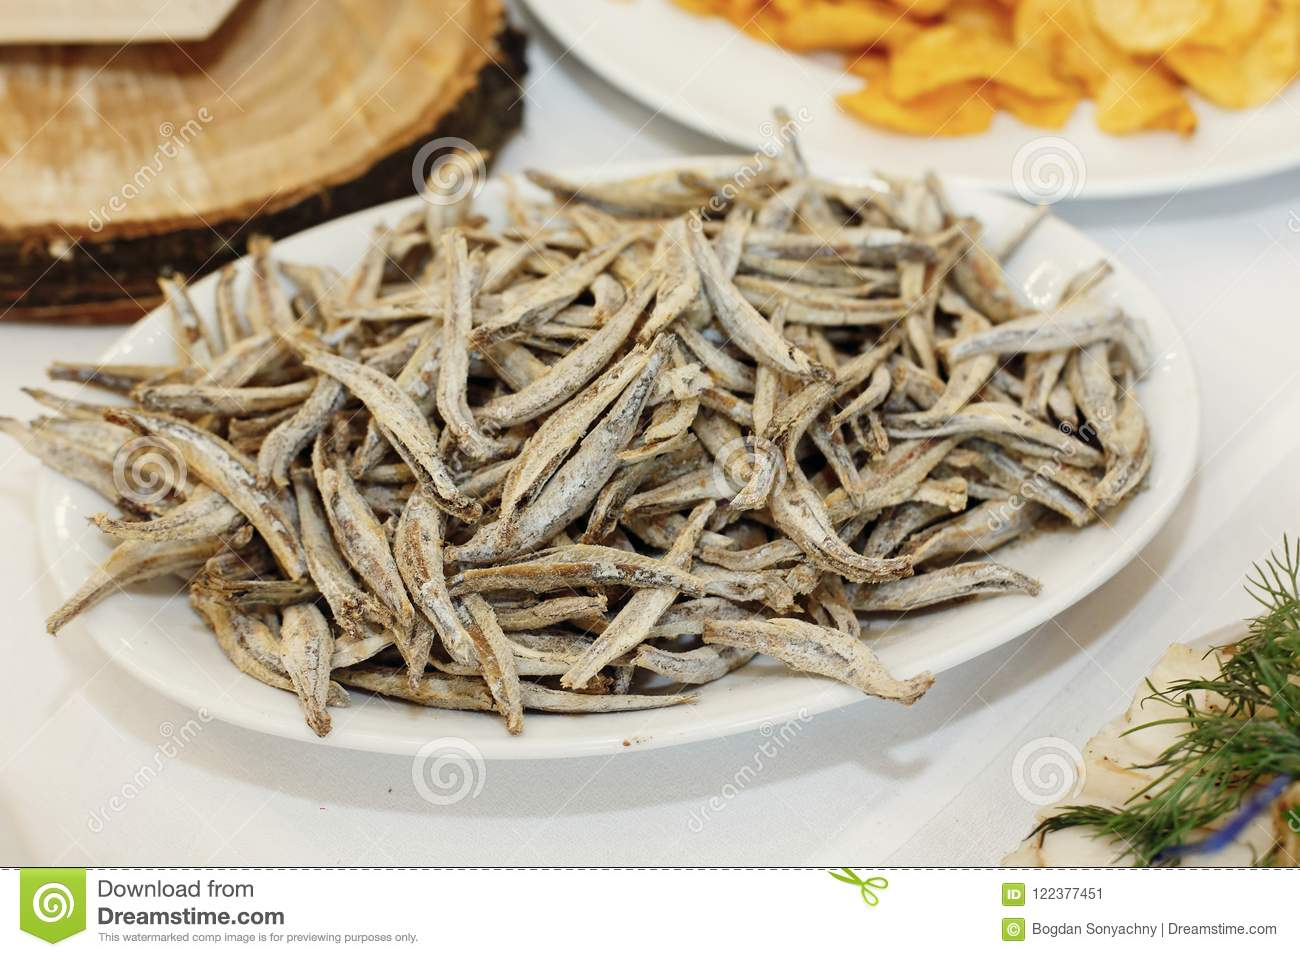 salty smoked anchovies on wooden desk on table, wedding reception. beer bar and snacks. catering in restaurant